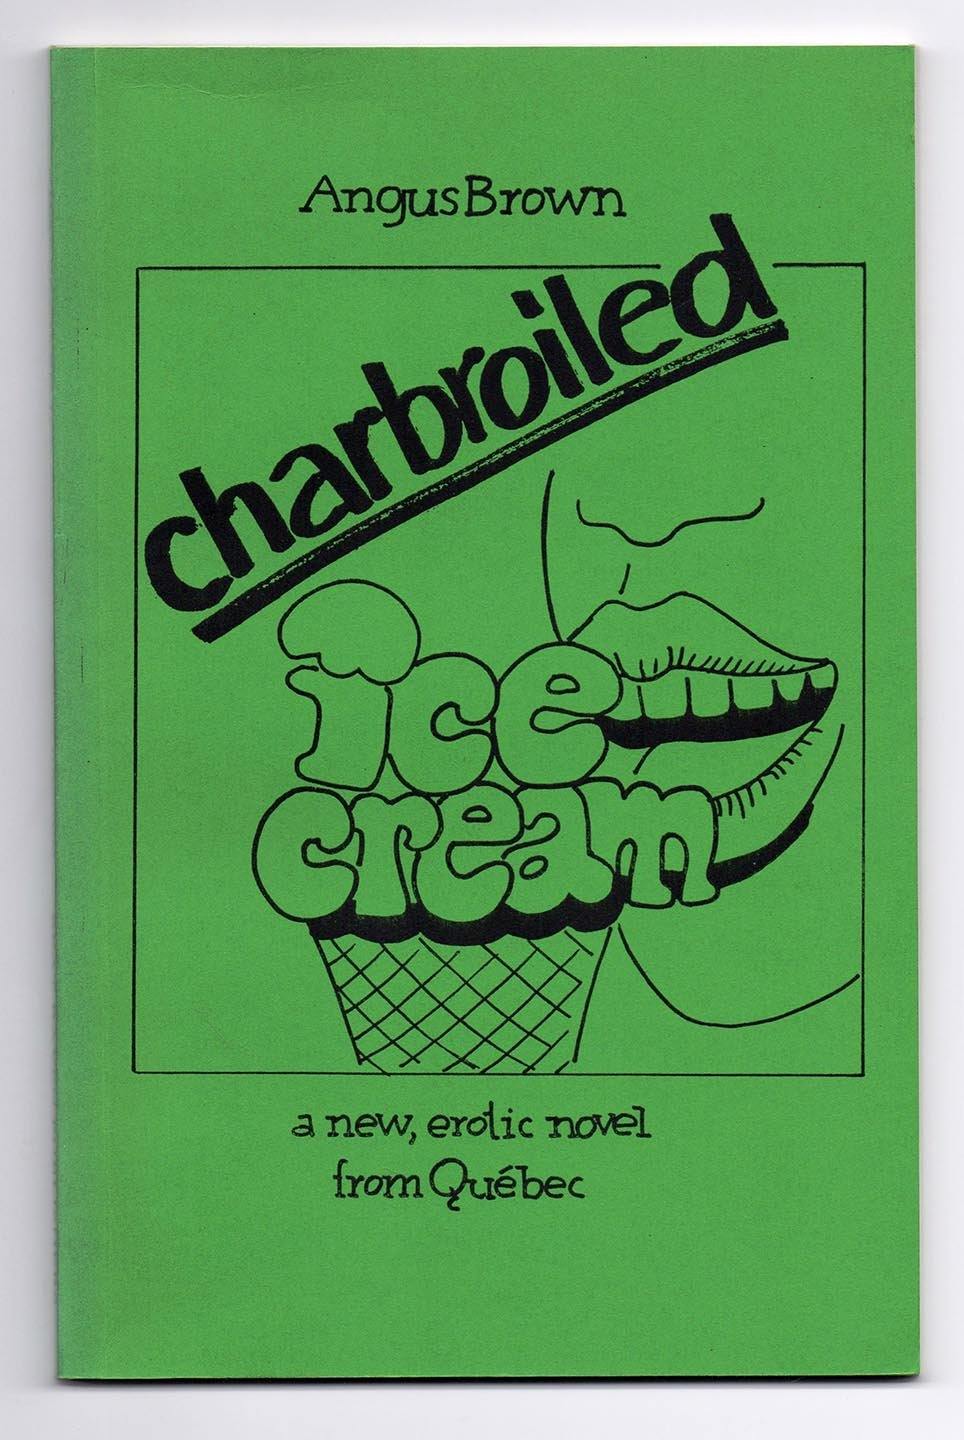 charbroiled ice cream: a new, erotic novel from Qubec